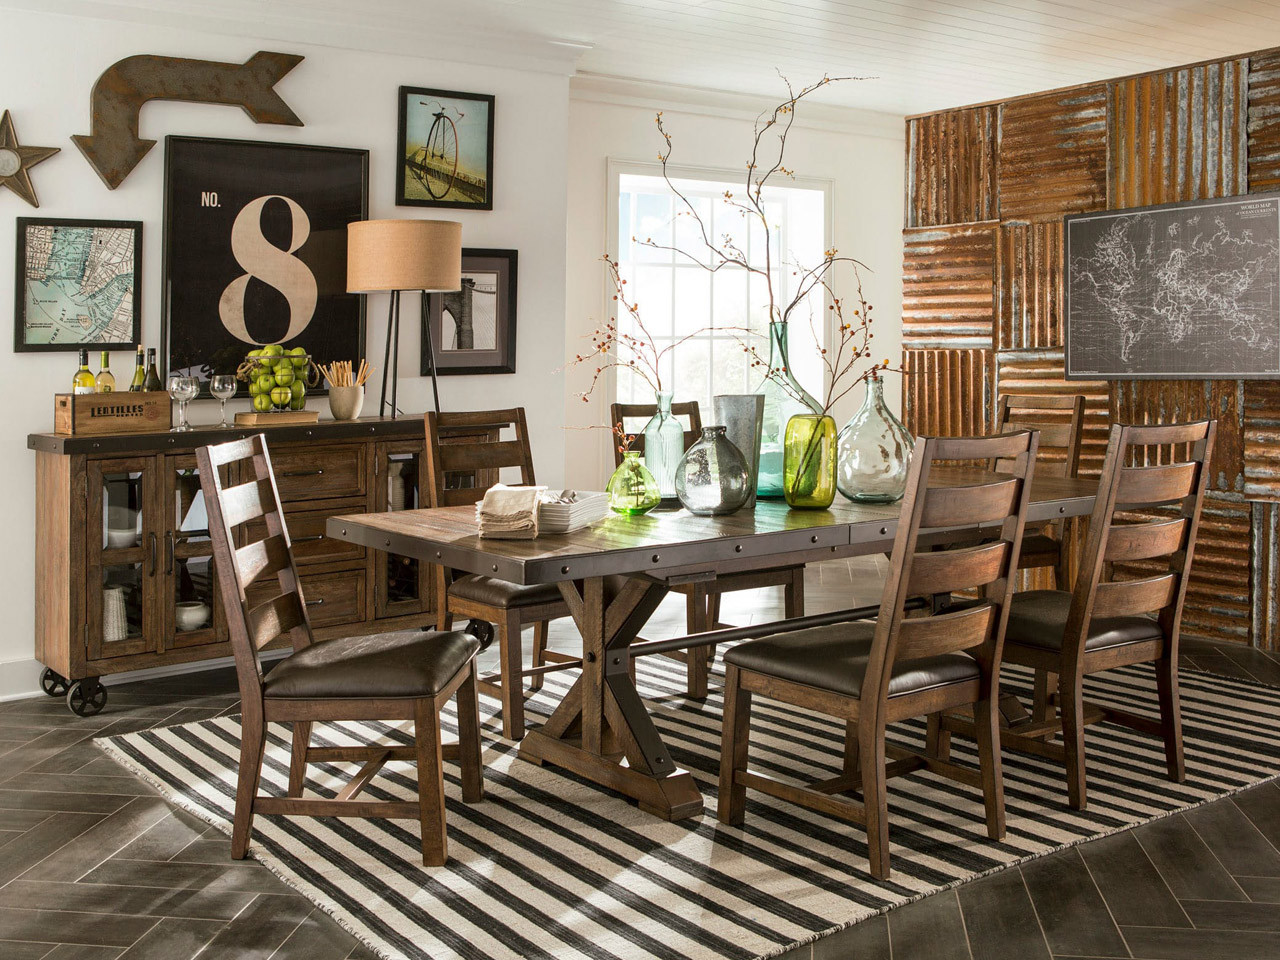 Taos Dining Set 1299 For Table And 4 Chairs Spring Sale Special